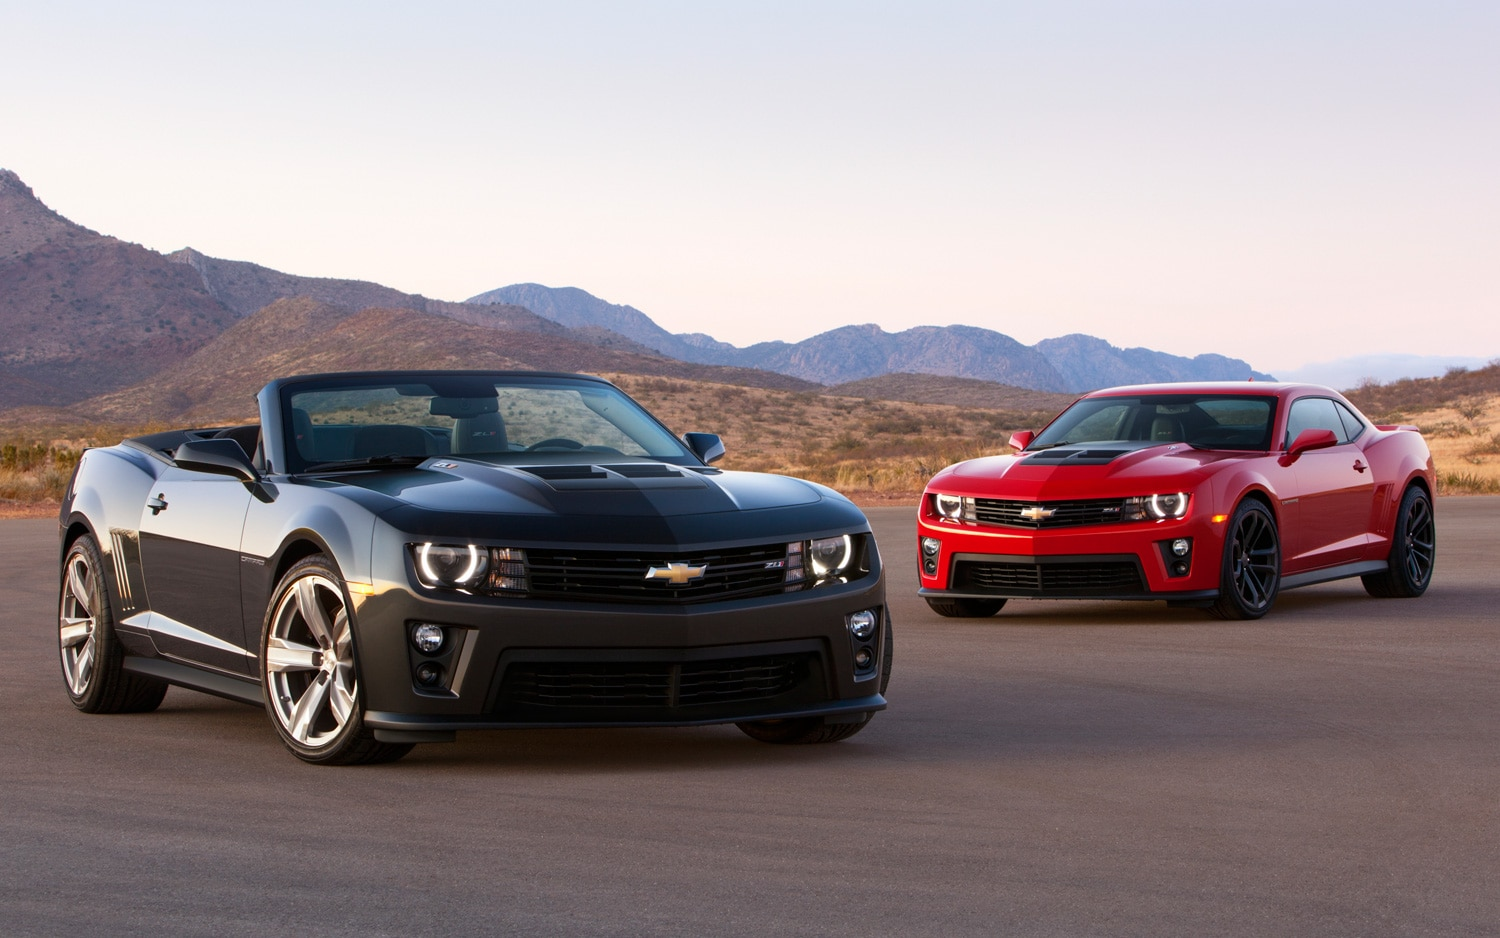 2012 Chevrolet Camaro ZL1 Coupe And Convertible1